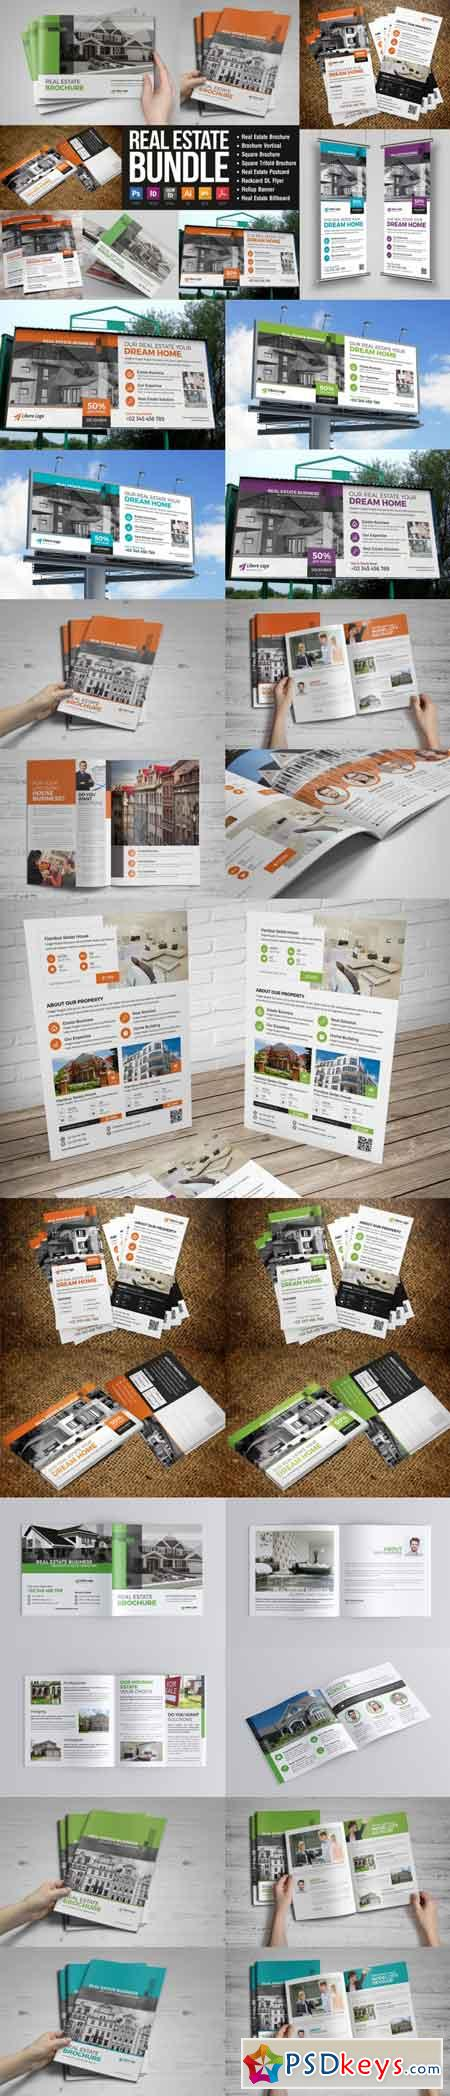 Real Estate Bundle - 9 in One